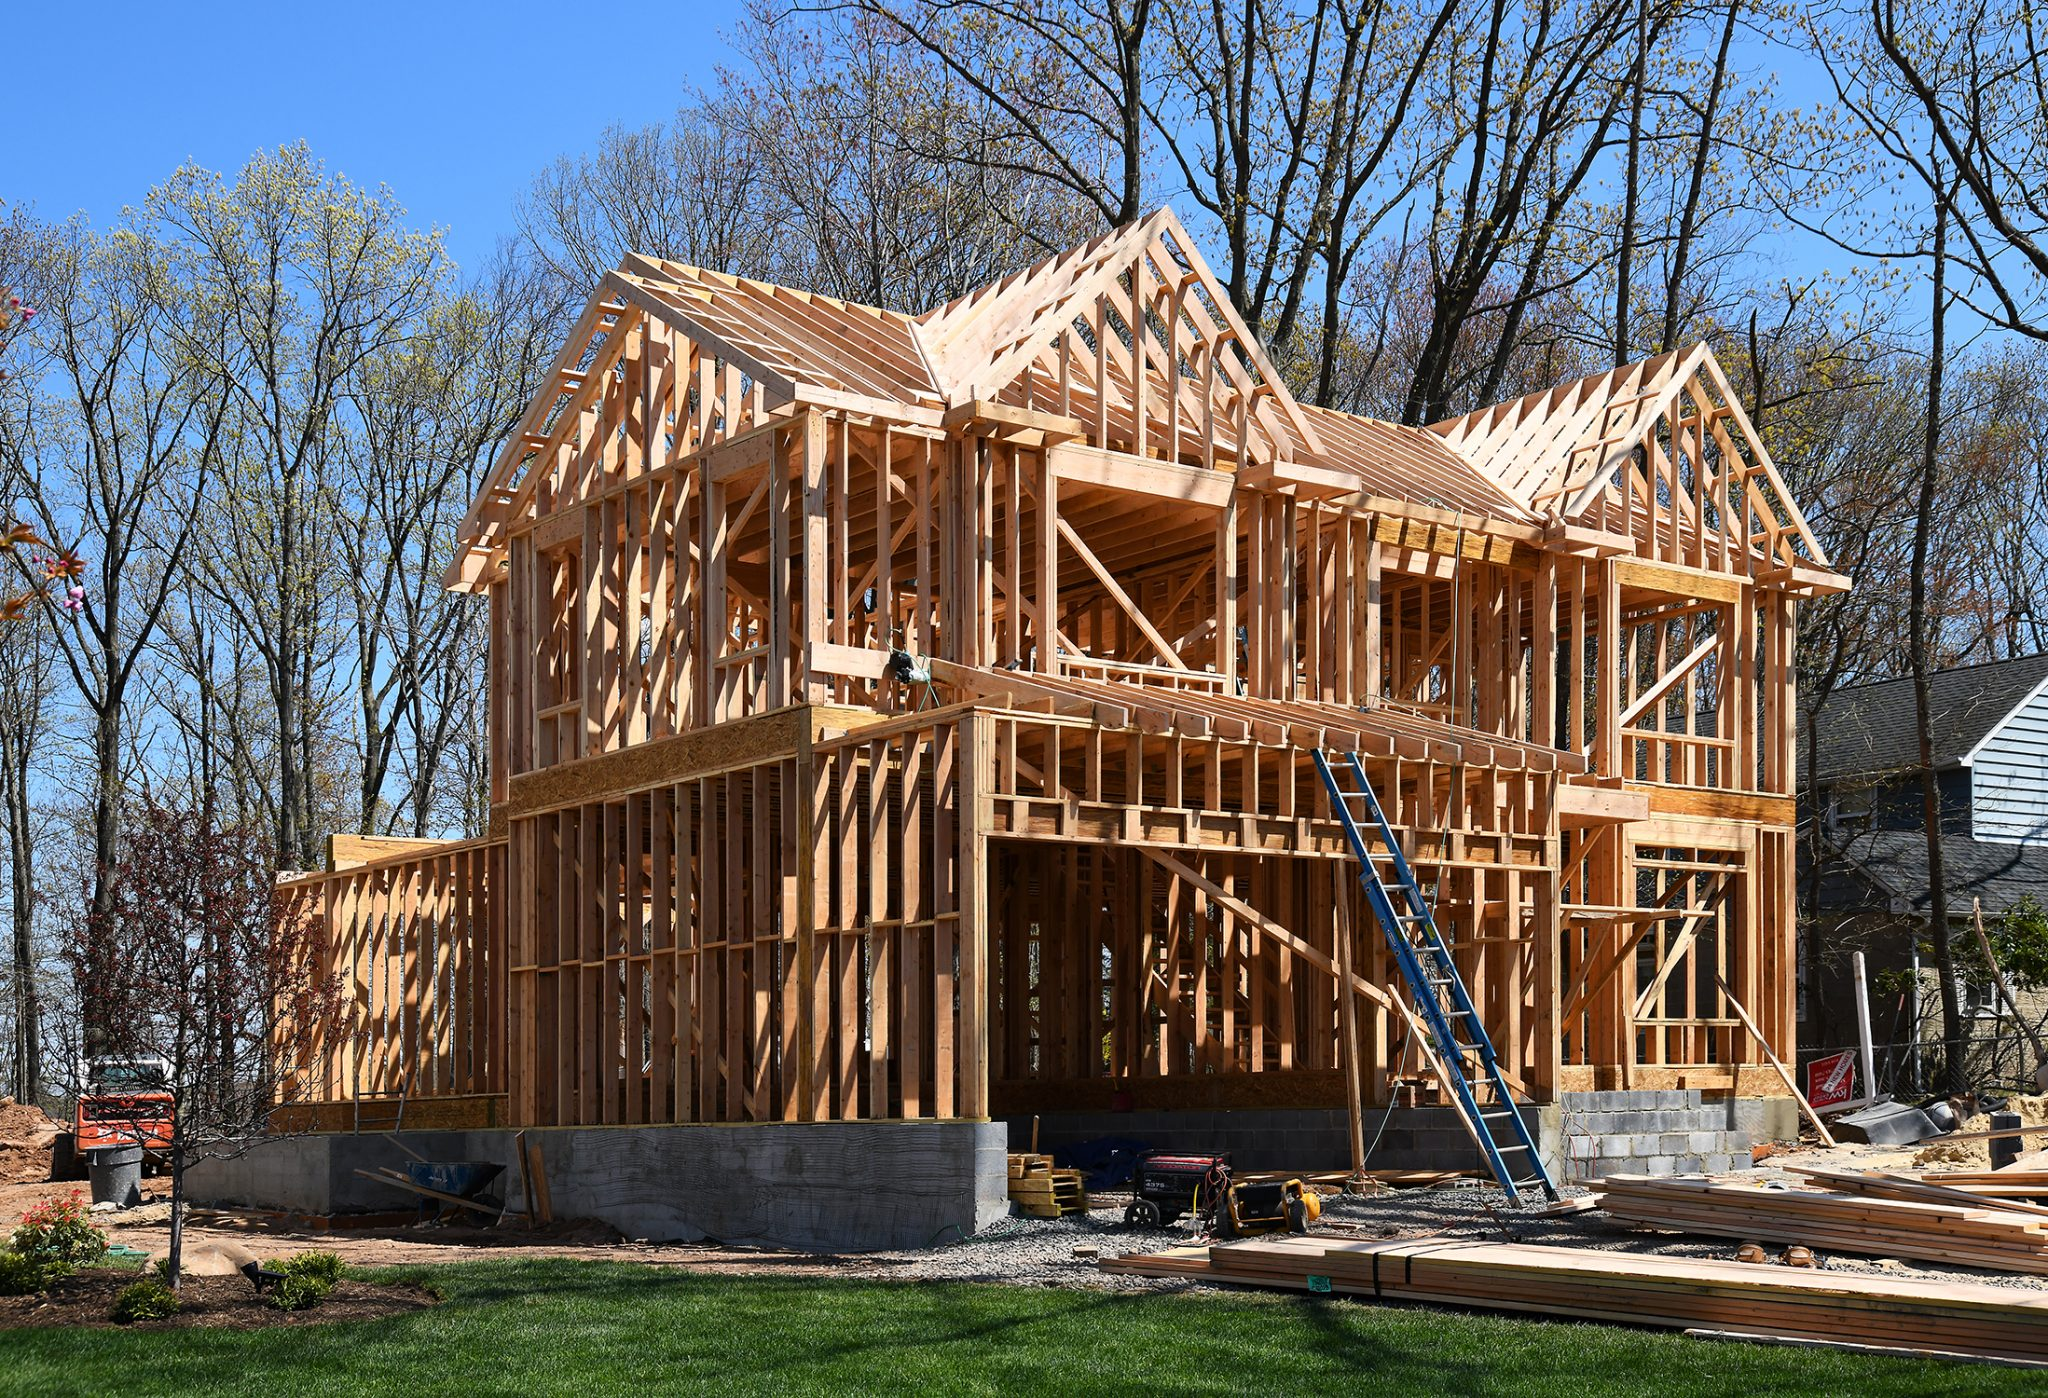 House under construction showing basic framing with 2X4s